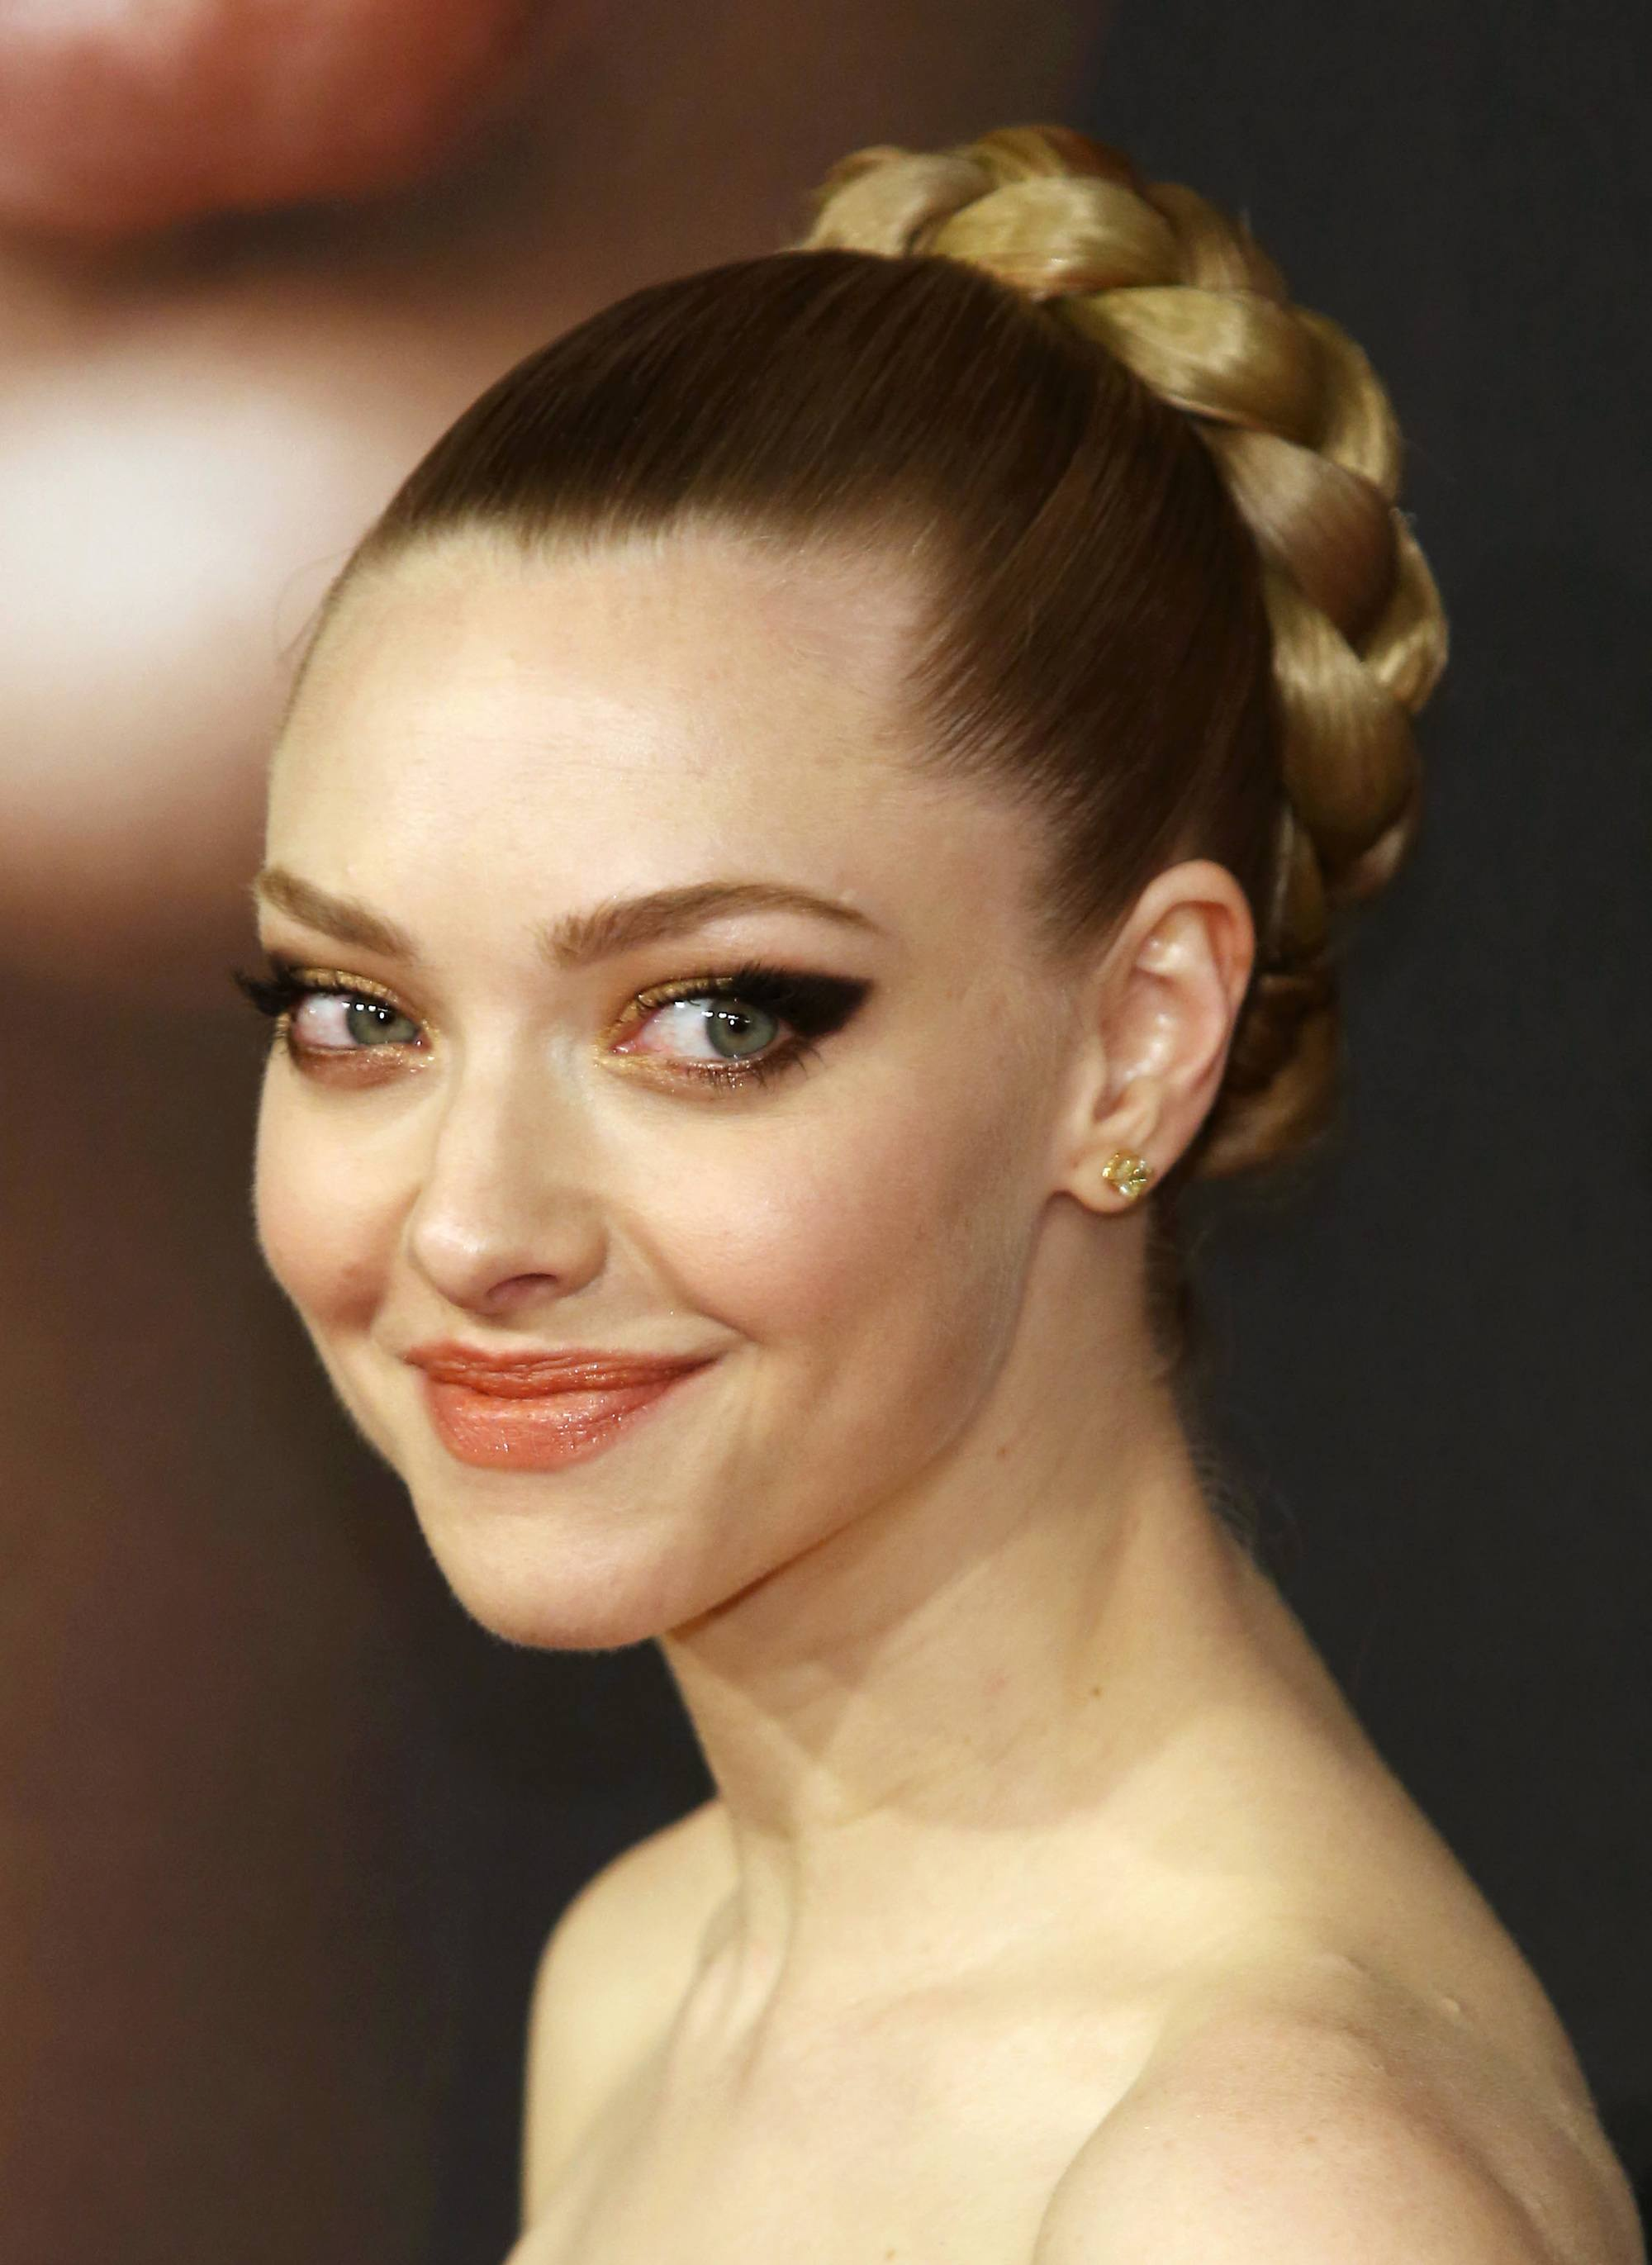 actress amanda seyfried with her hair in a slicked back braided bun